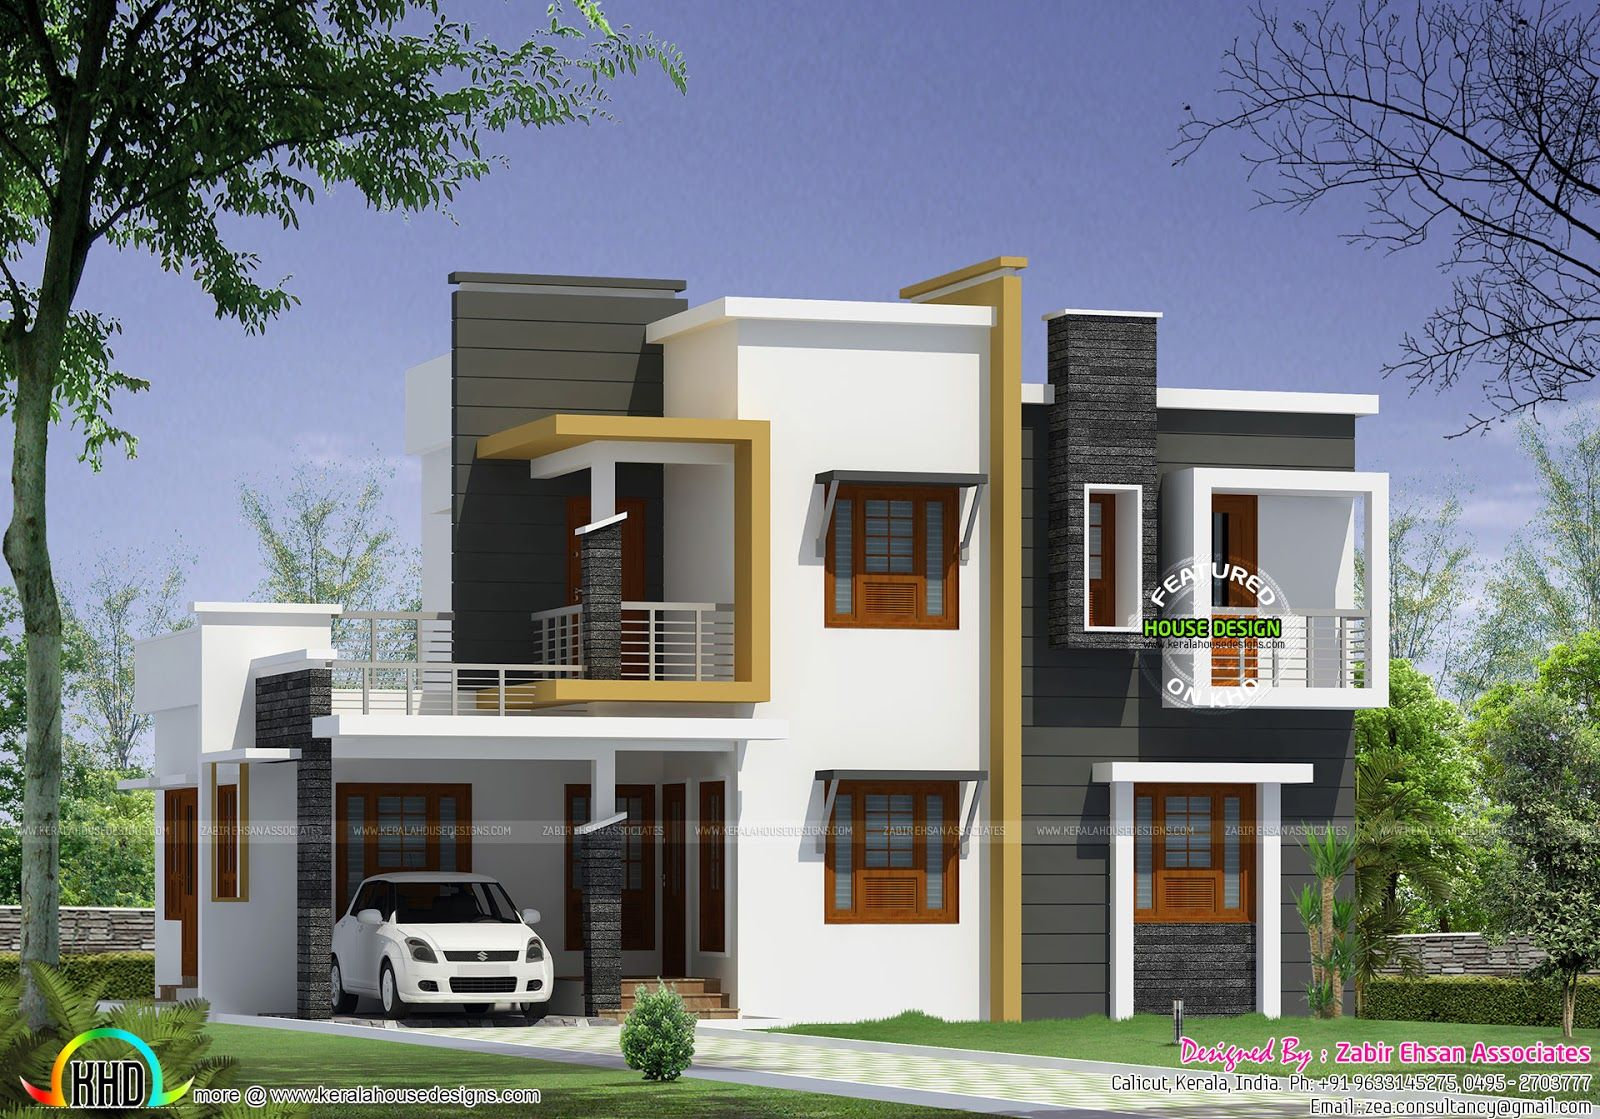 Box Type Modern House Plan Kerala Home Design And Floor Plans Images